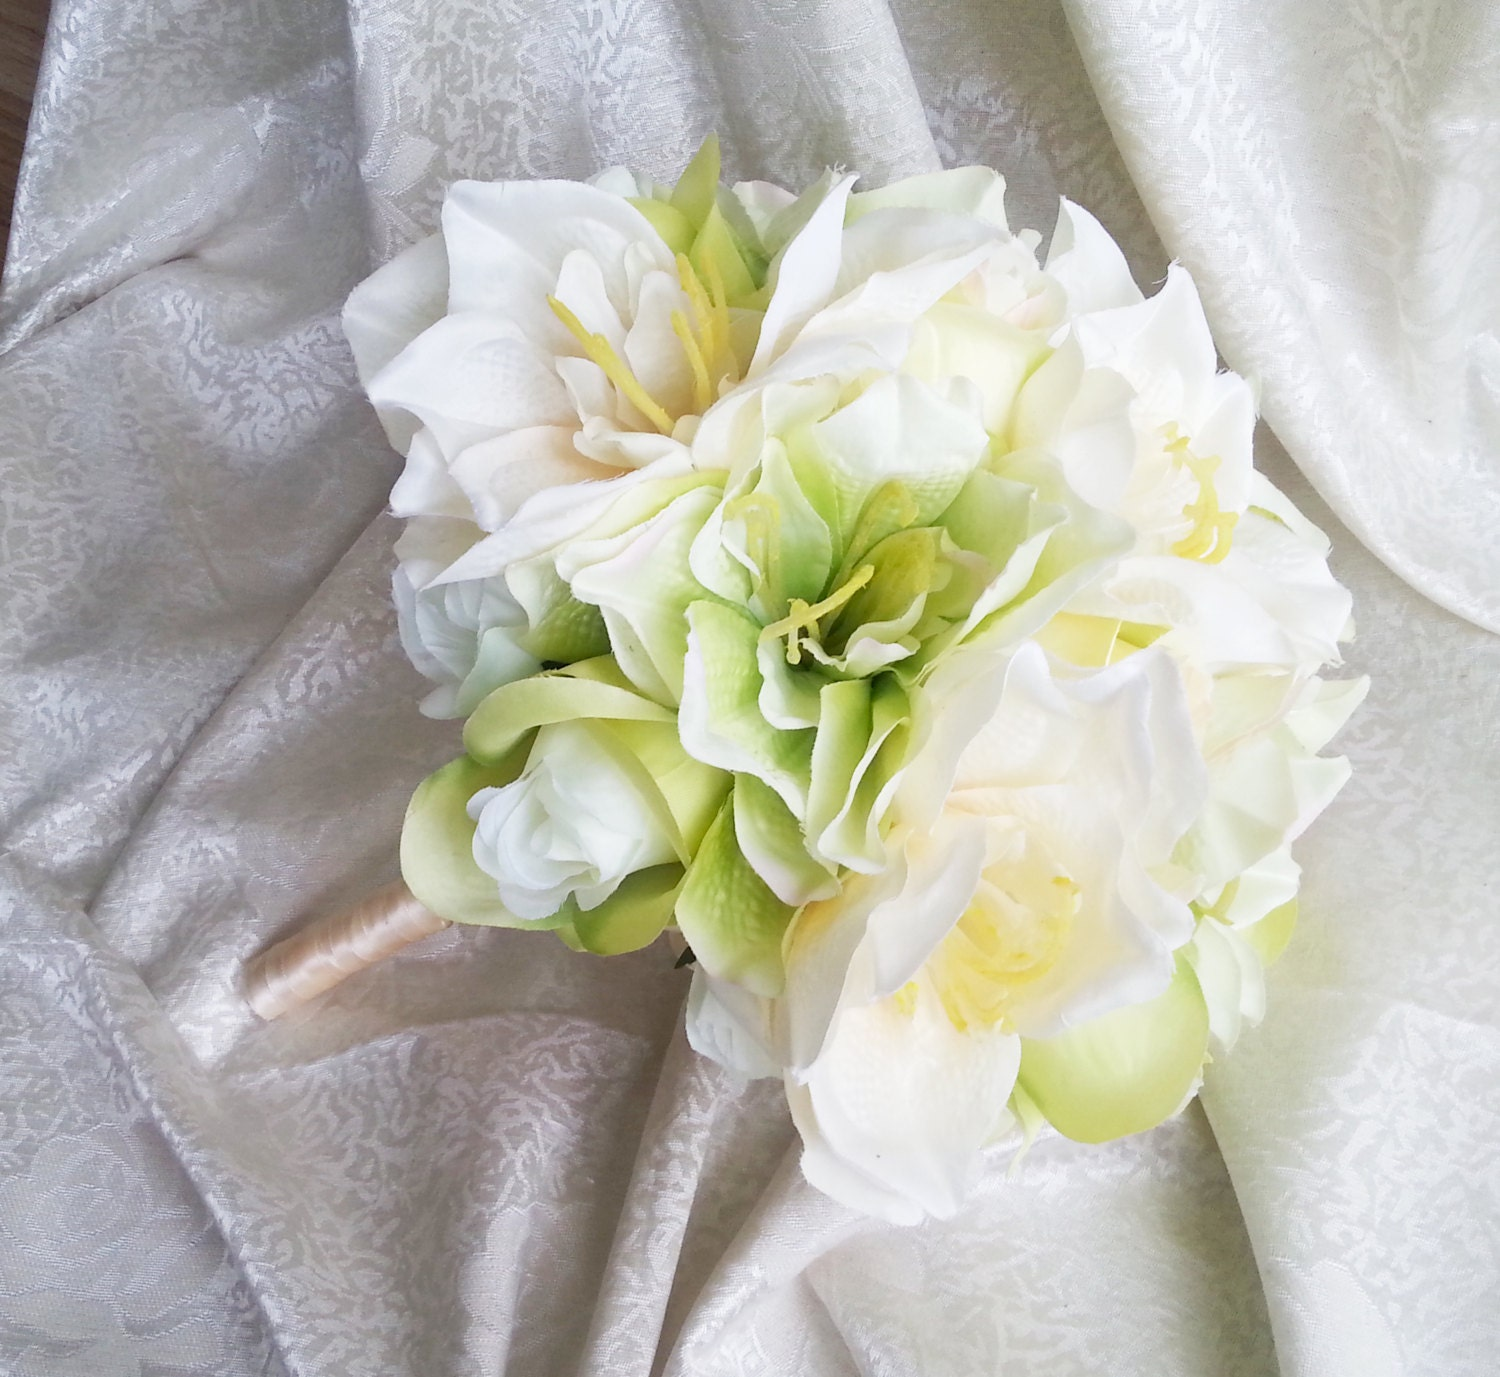 Green silk flowers wedding bouquet greenery lime green cream roses green silk flowers wedding bouquet greenery lime green cream roses lily satin ribbon bridal bridesmaids cheap izmirmasajfo